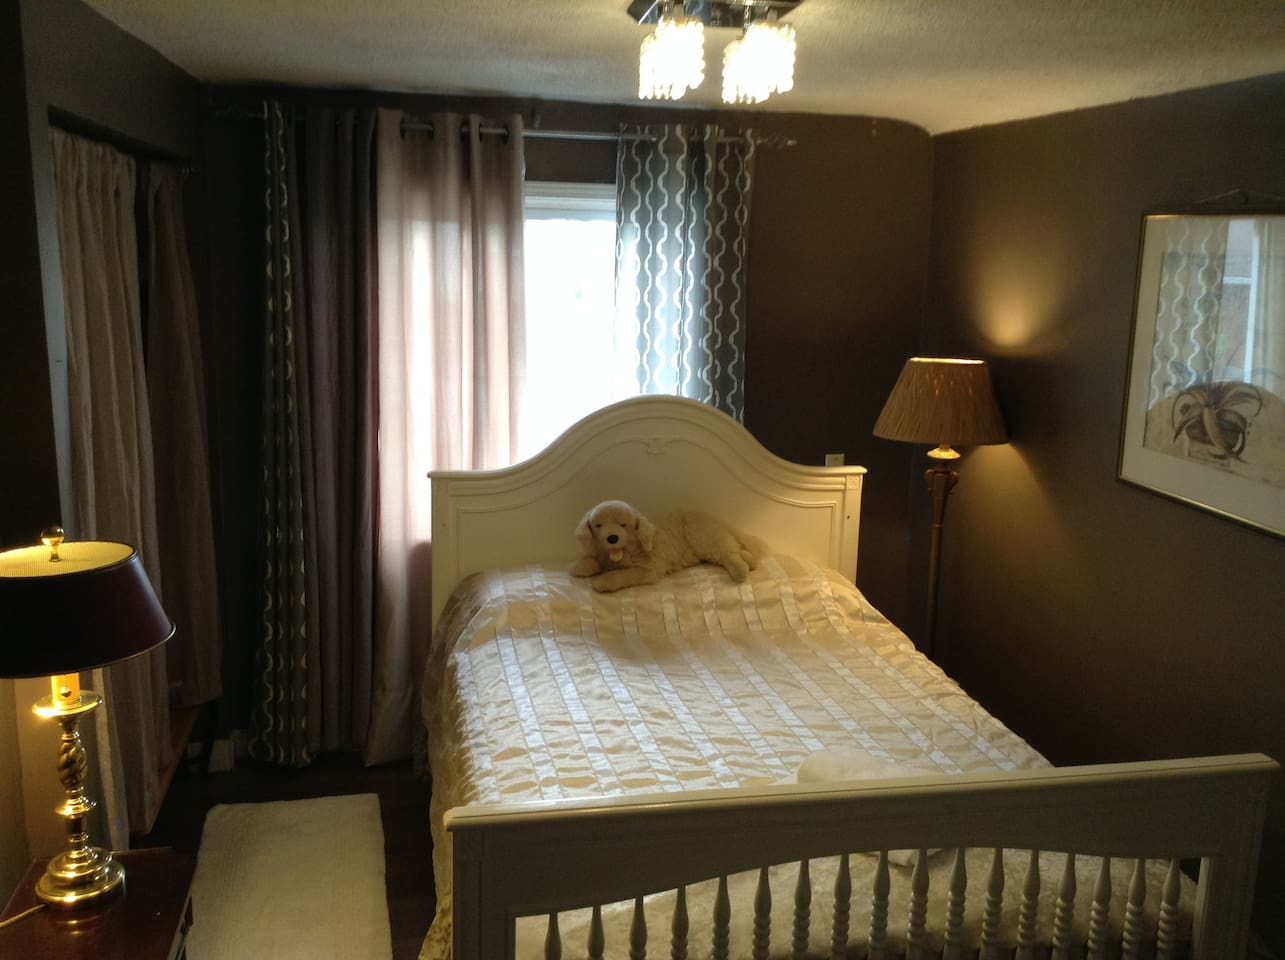 Victoria Room, cozy room with a double bed